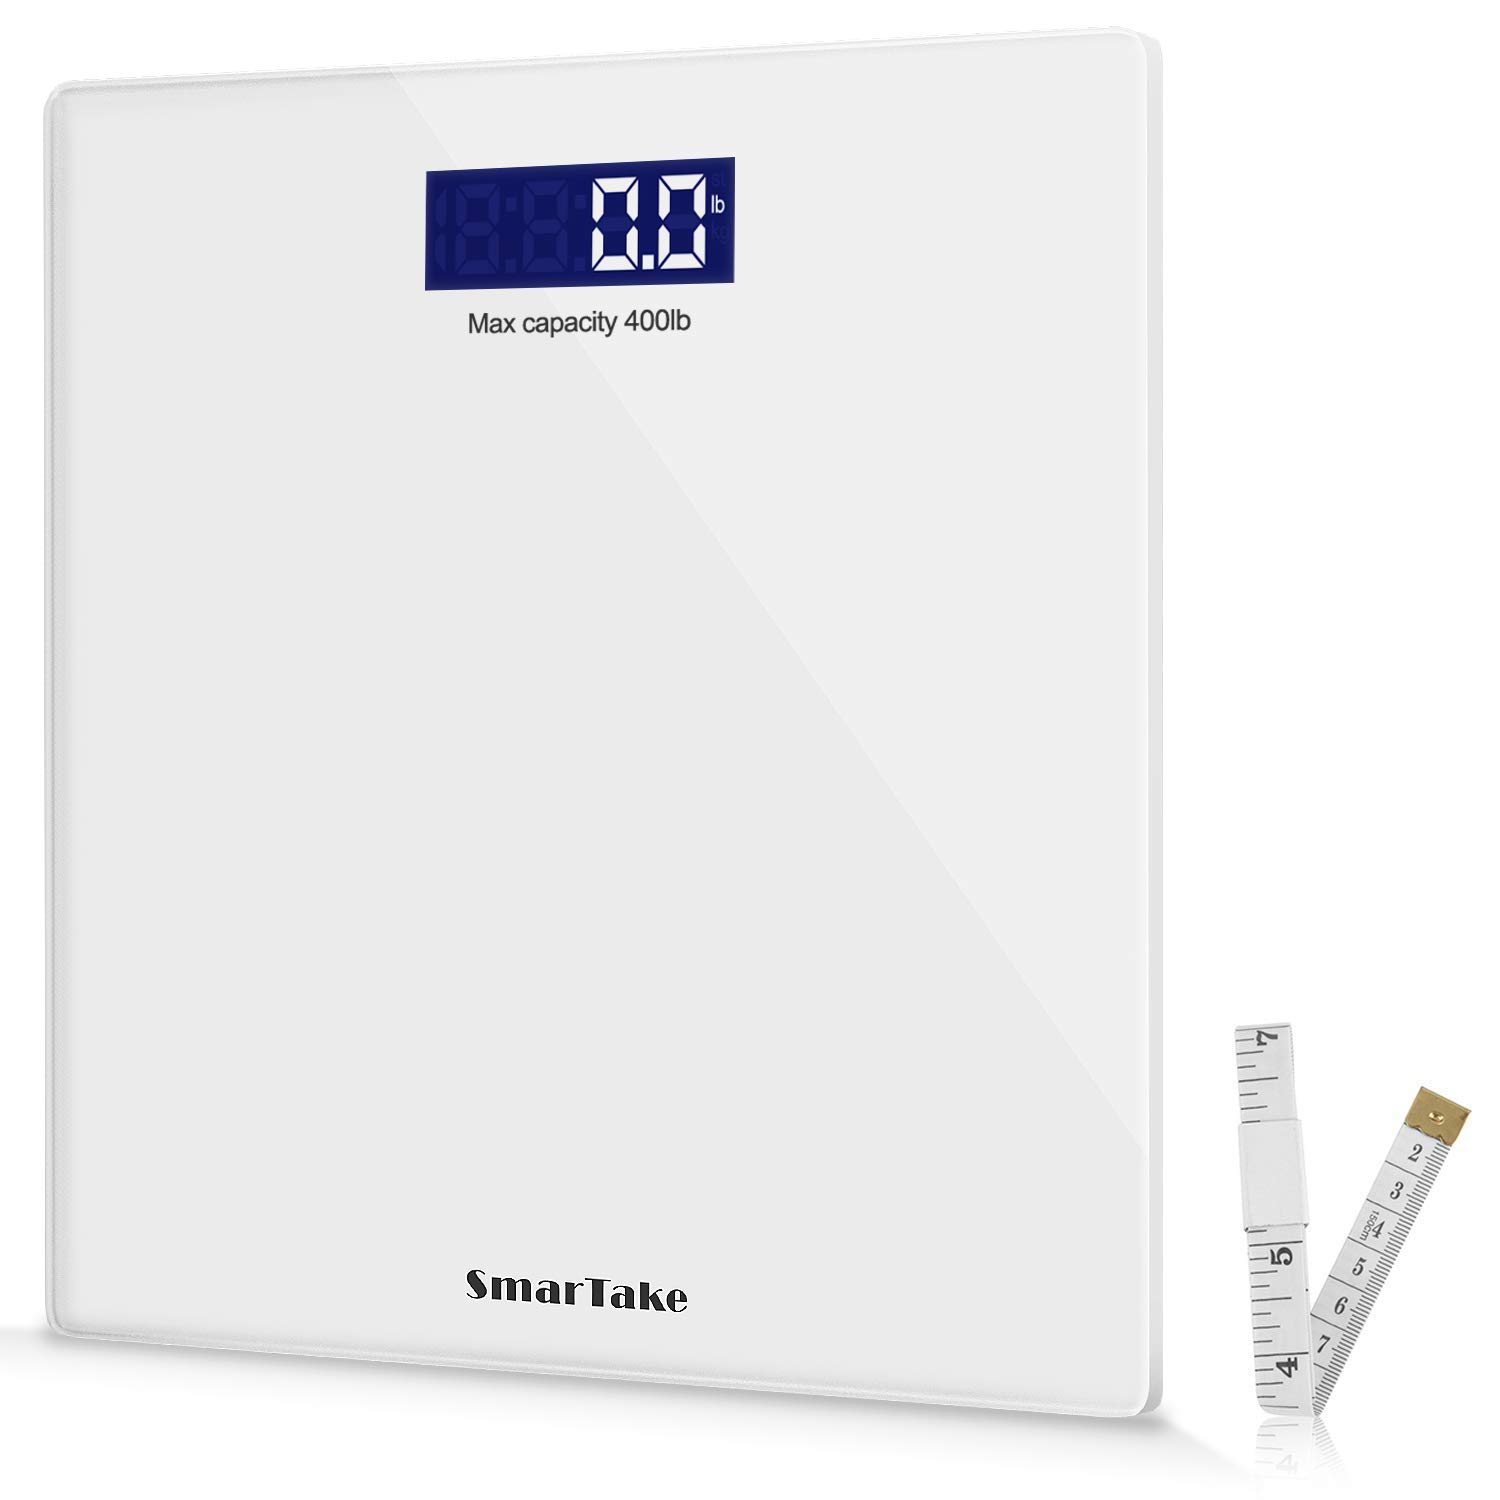 SMARTAKE Weight Scale, Precision Digital Body Bathroom Scale with Step-On Technology, 6mm Tempered Glass Easy Read Backlit LCD Display, 400 Pounds, White